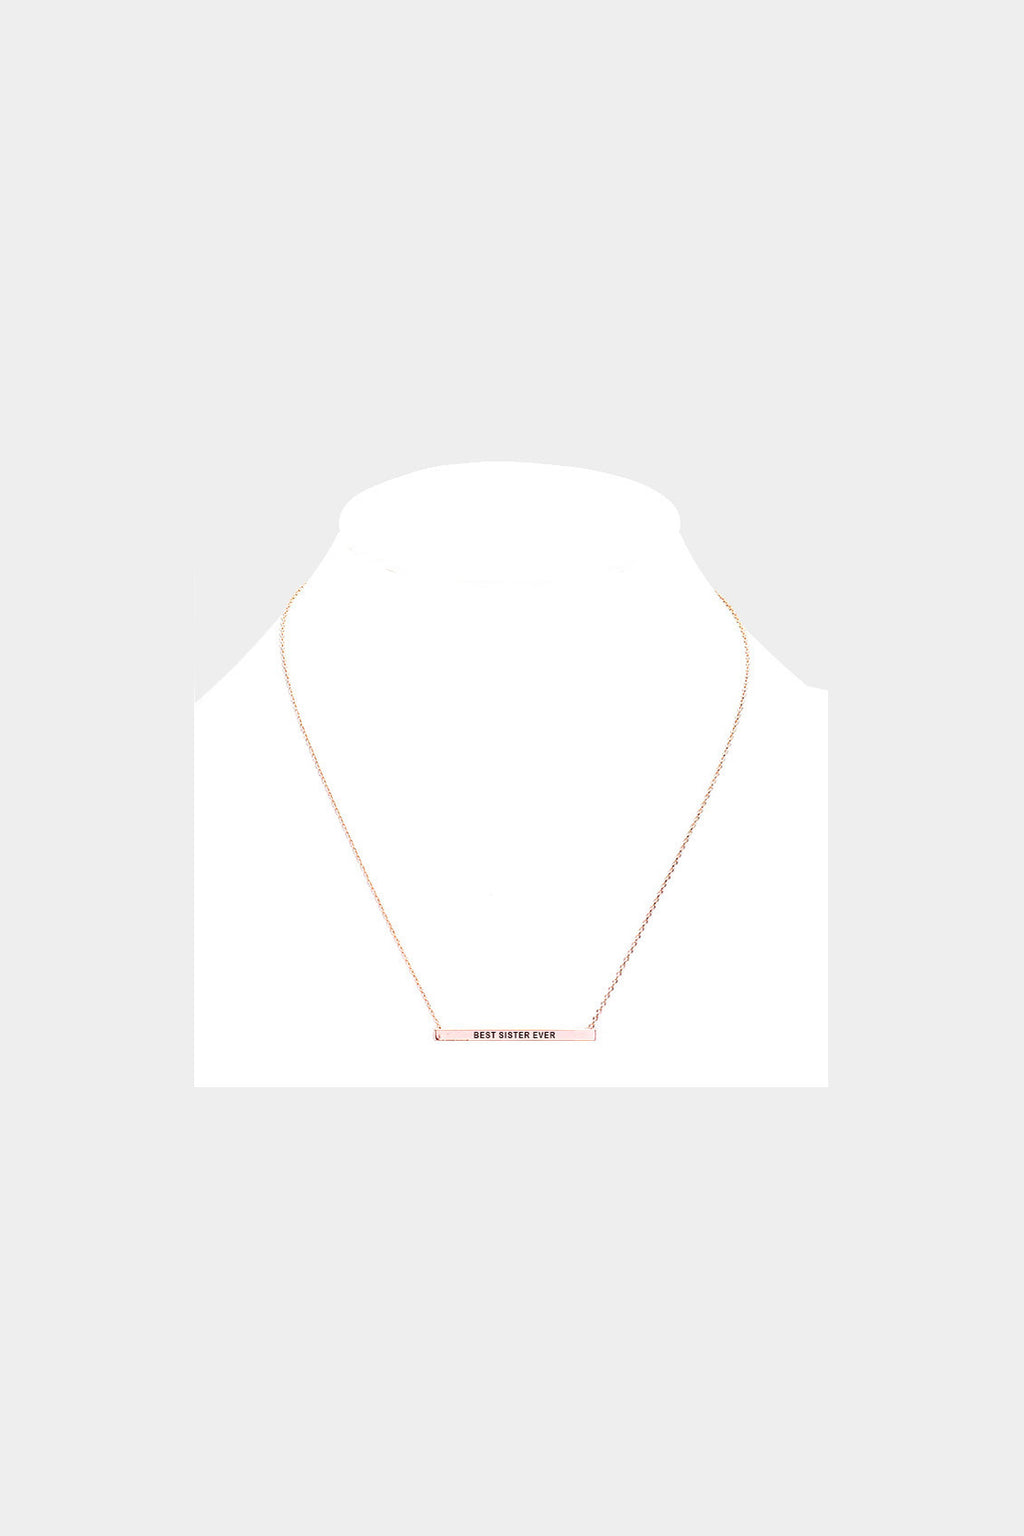 """Best Sister Ever"" Horizontal Metal Bar Necklace"